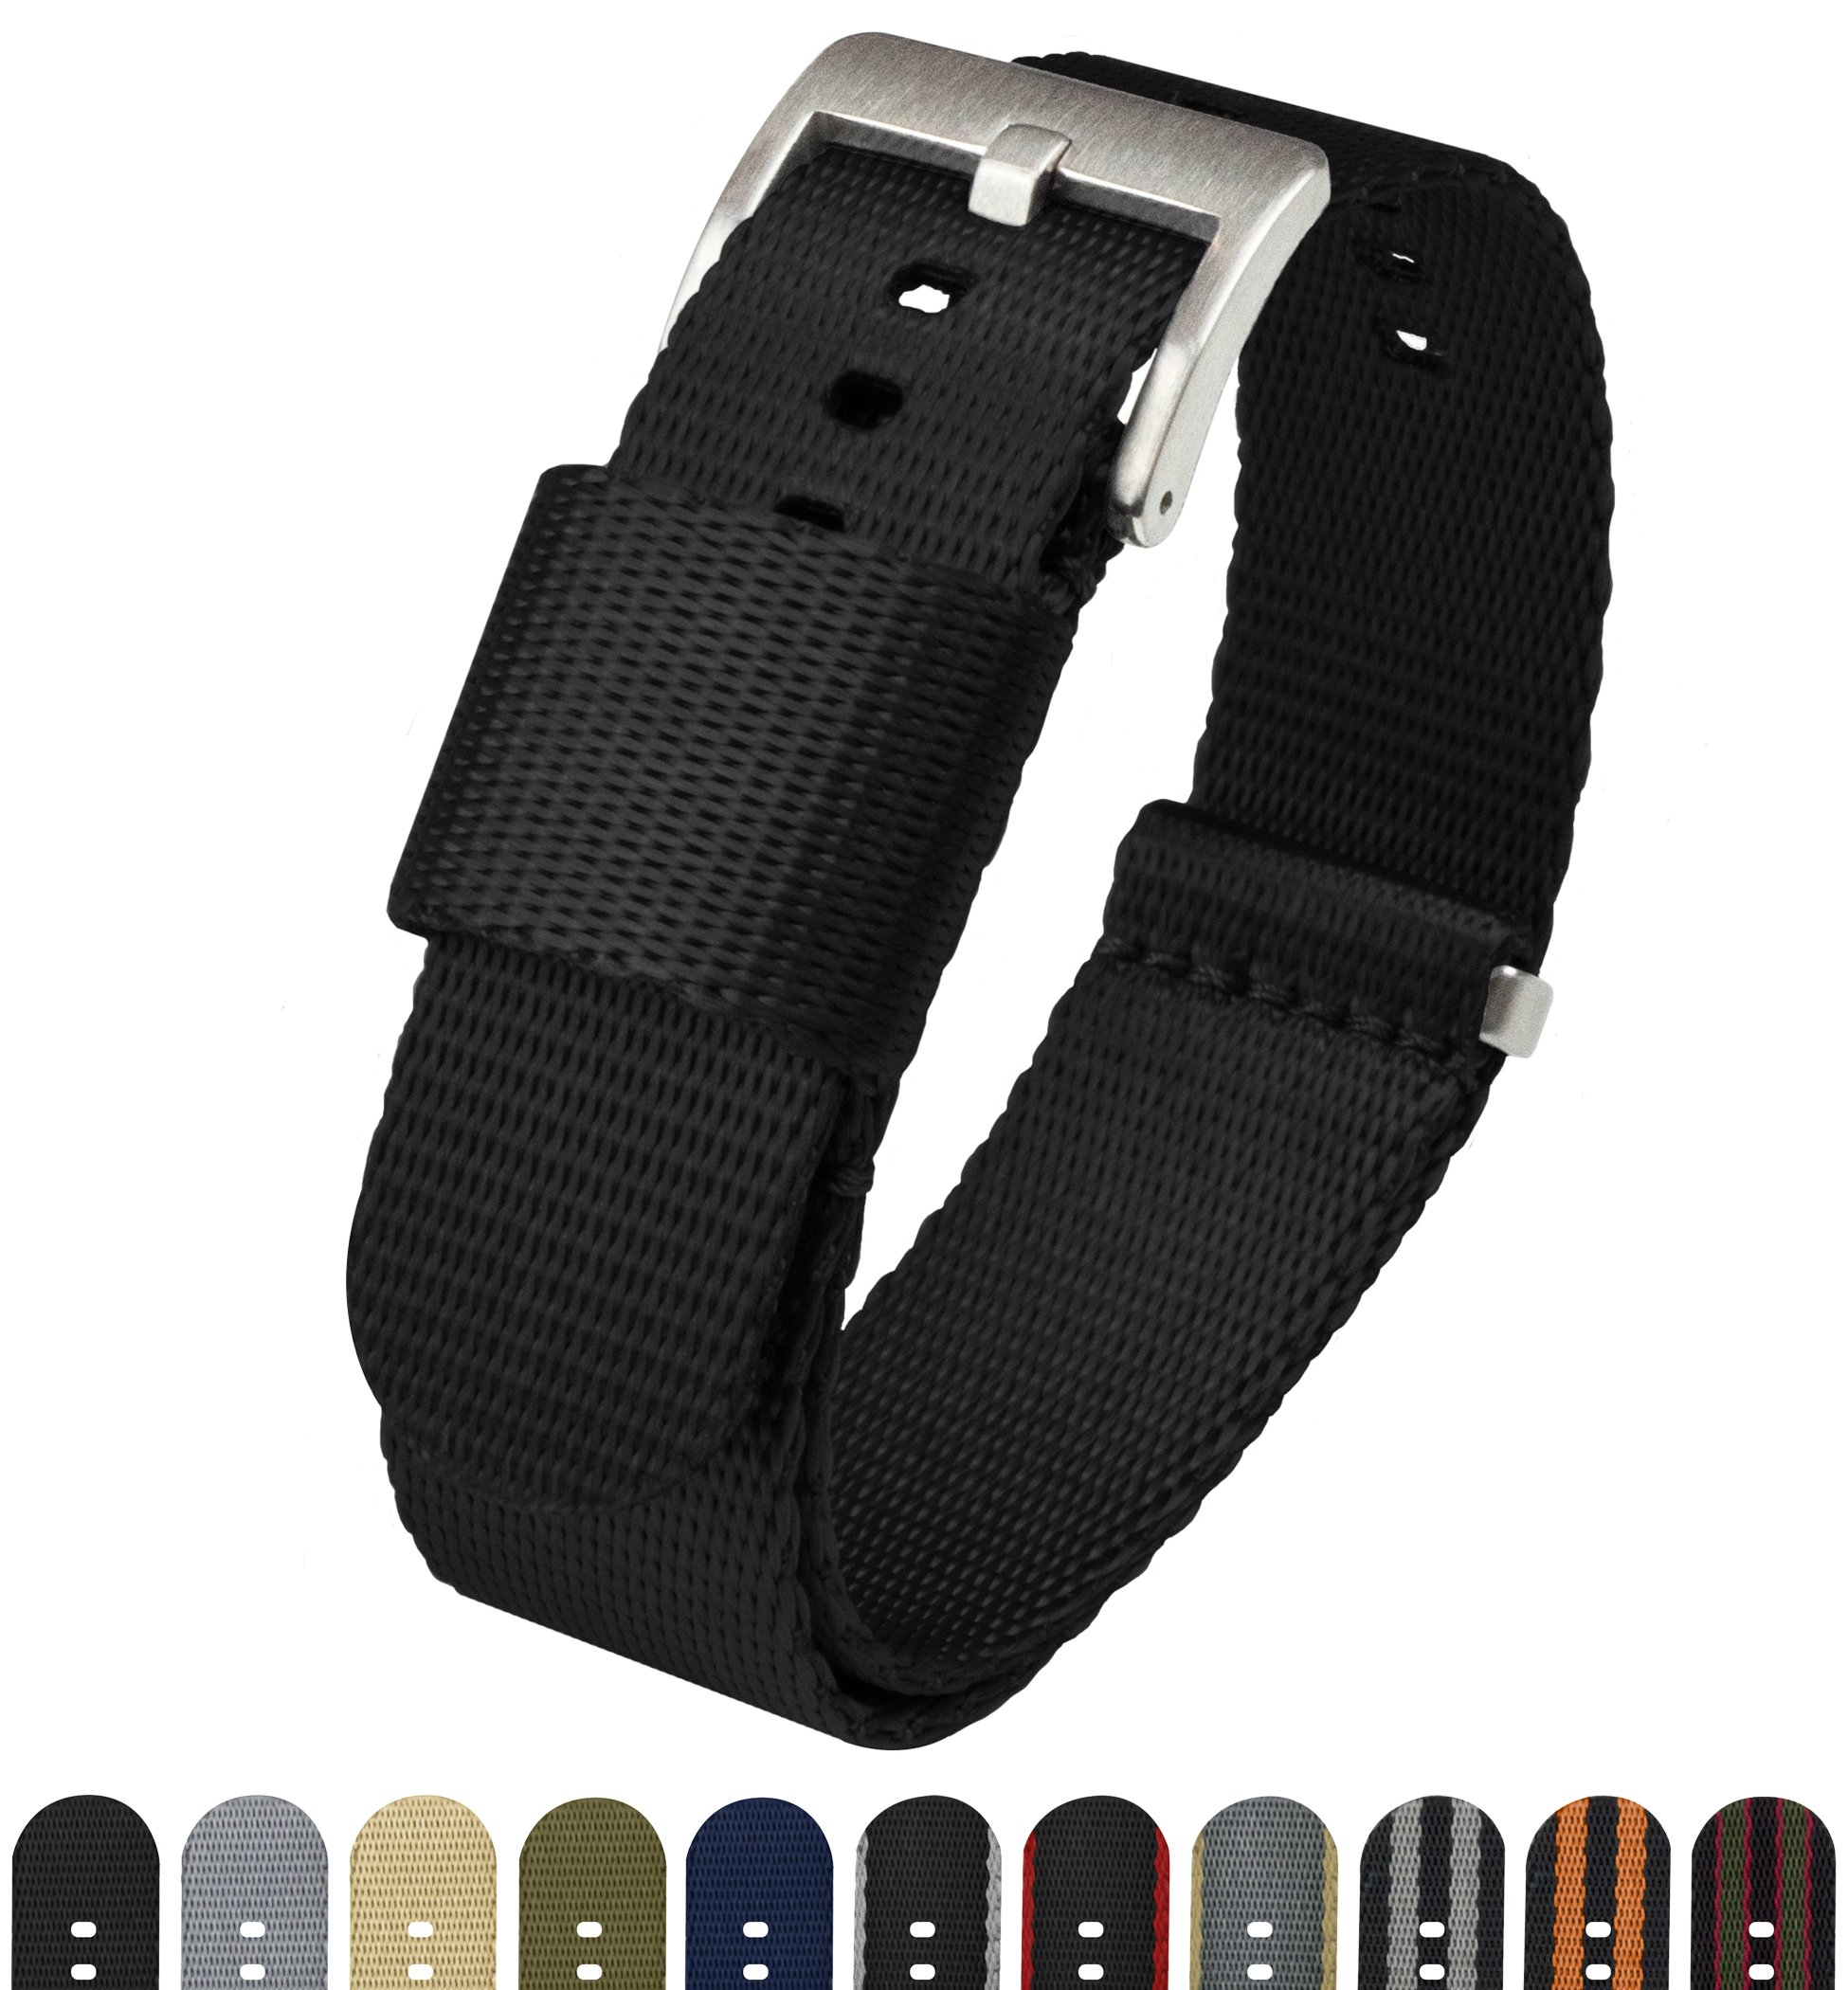 BARTON Jetson NATO Style Watch Strap - 18mm 20mm 22mm or 24mm - Black 20mm Nylon Watch Band